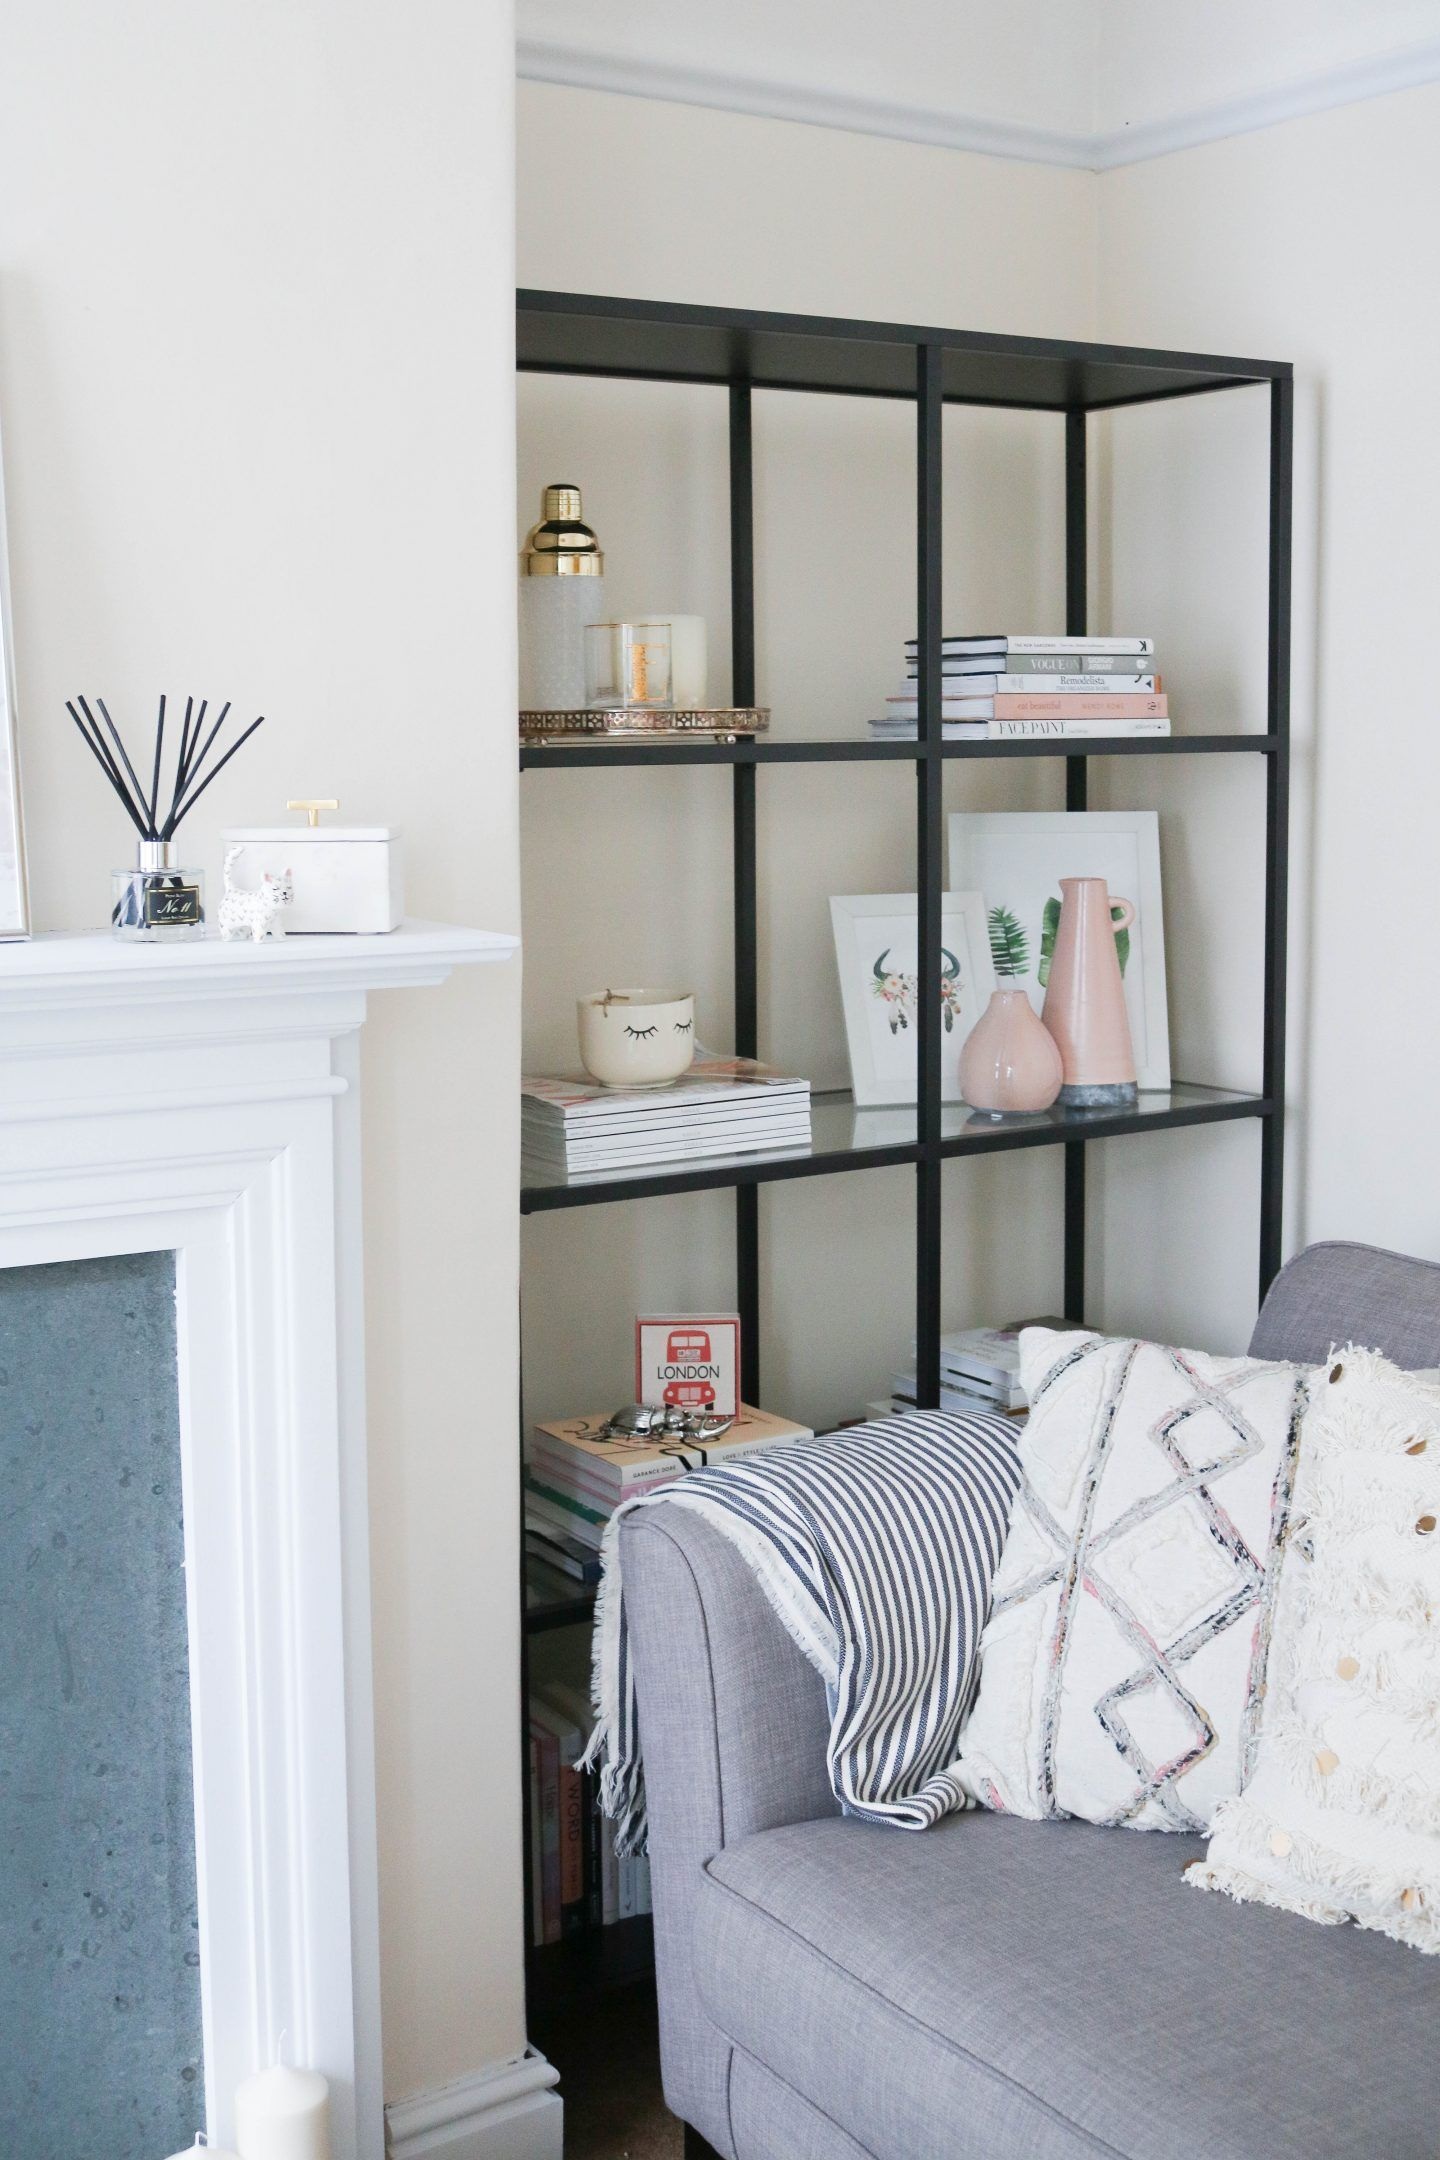 How To Achieve The Perfect Shelfie